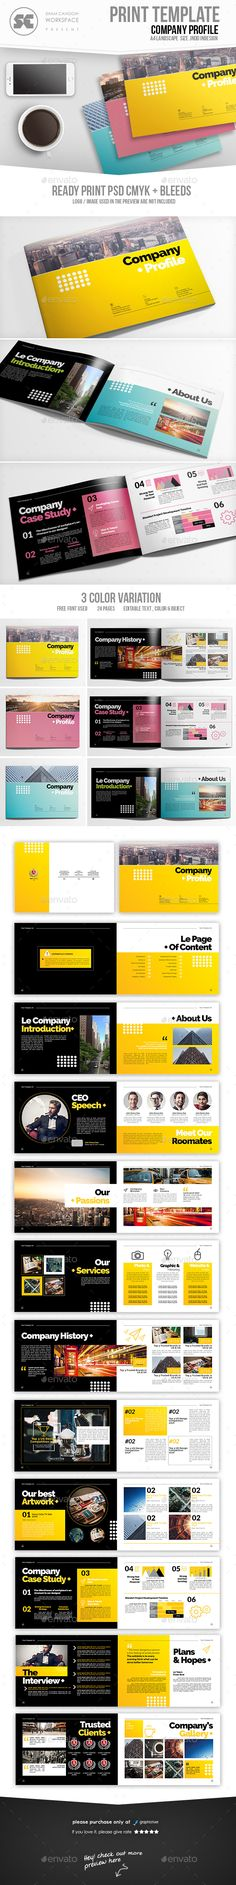 company profile brochure design templates 30 awesome company profile